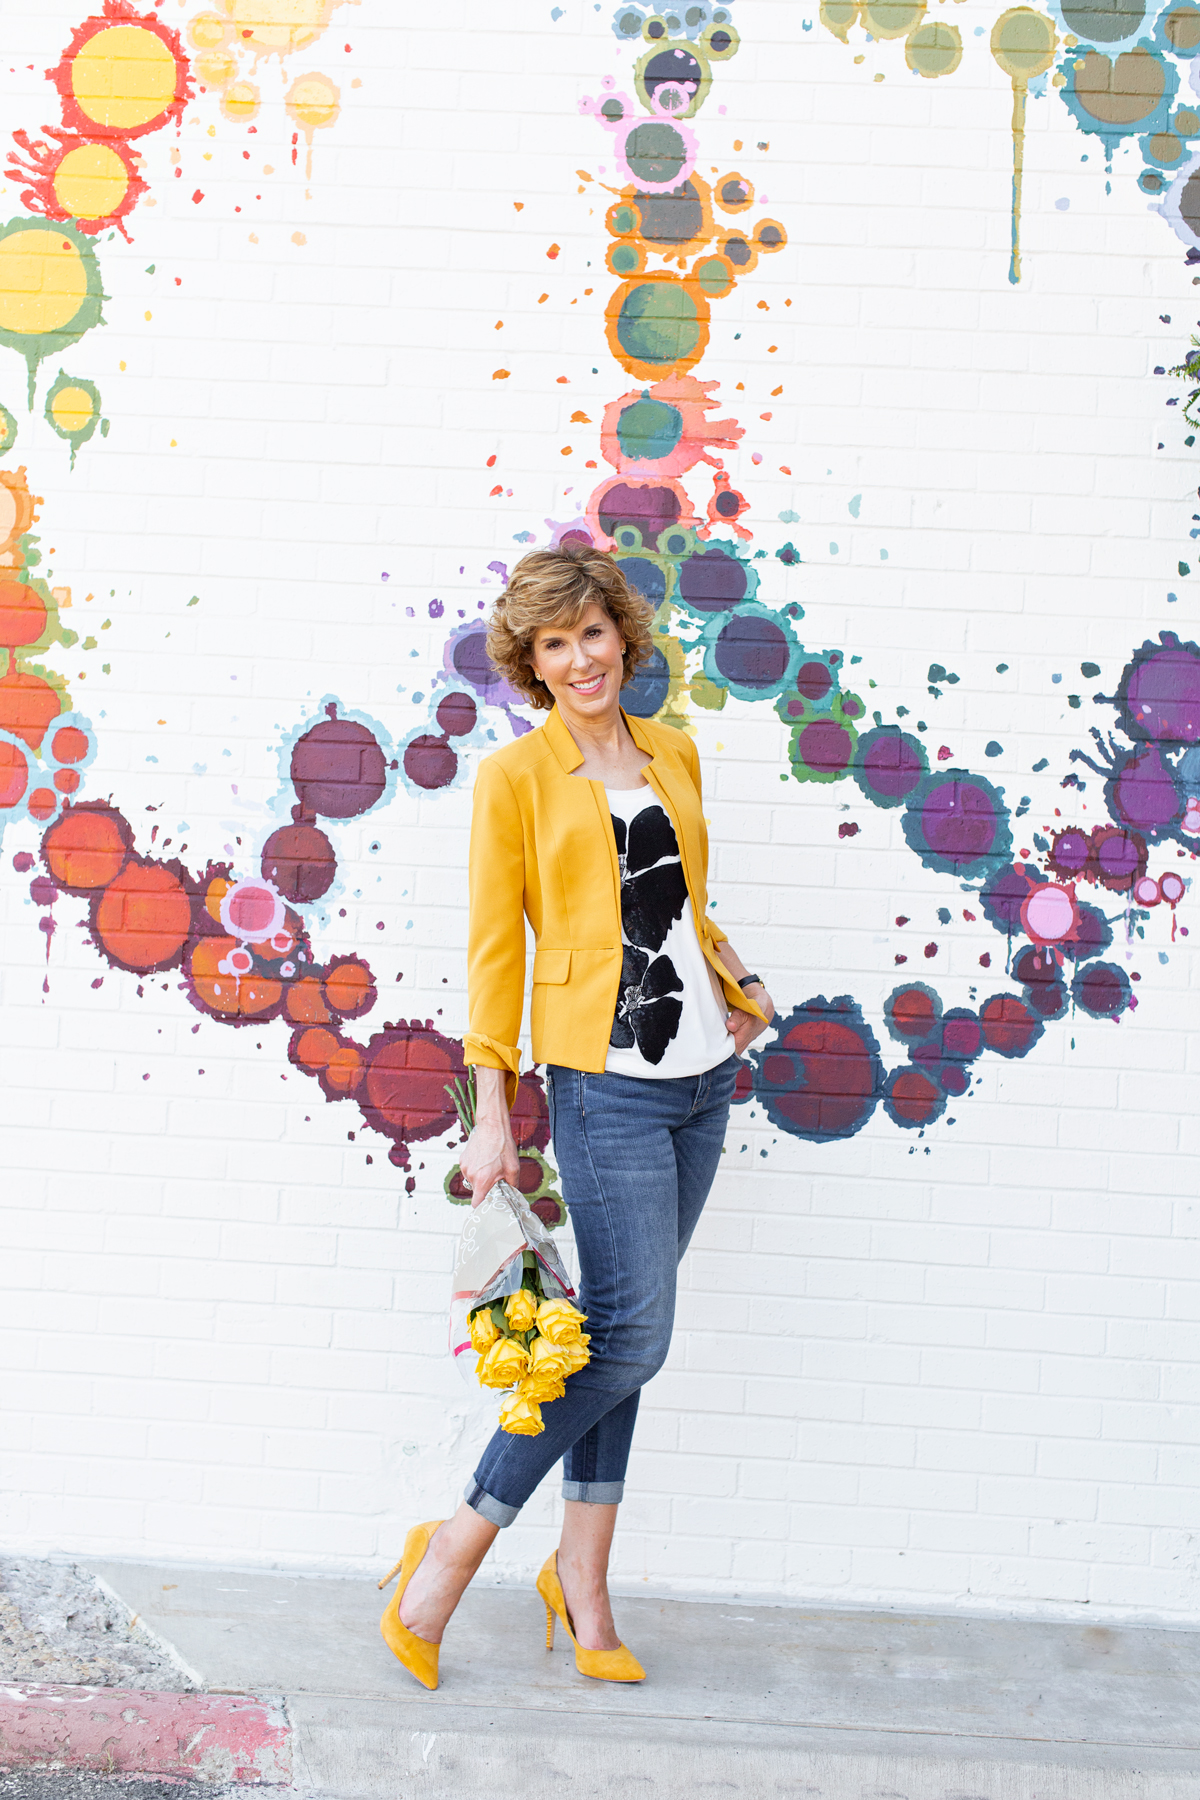 woman in gold blazer standing by a colorful peace sign painted wall thinking about what she learned this week